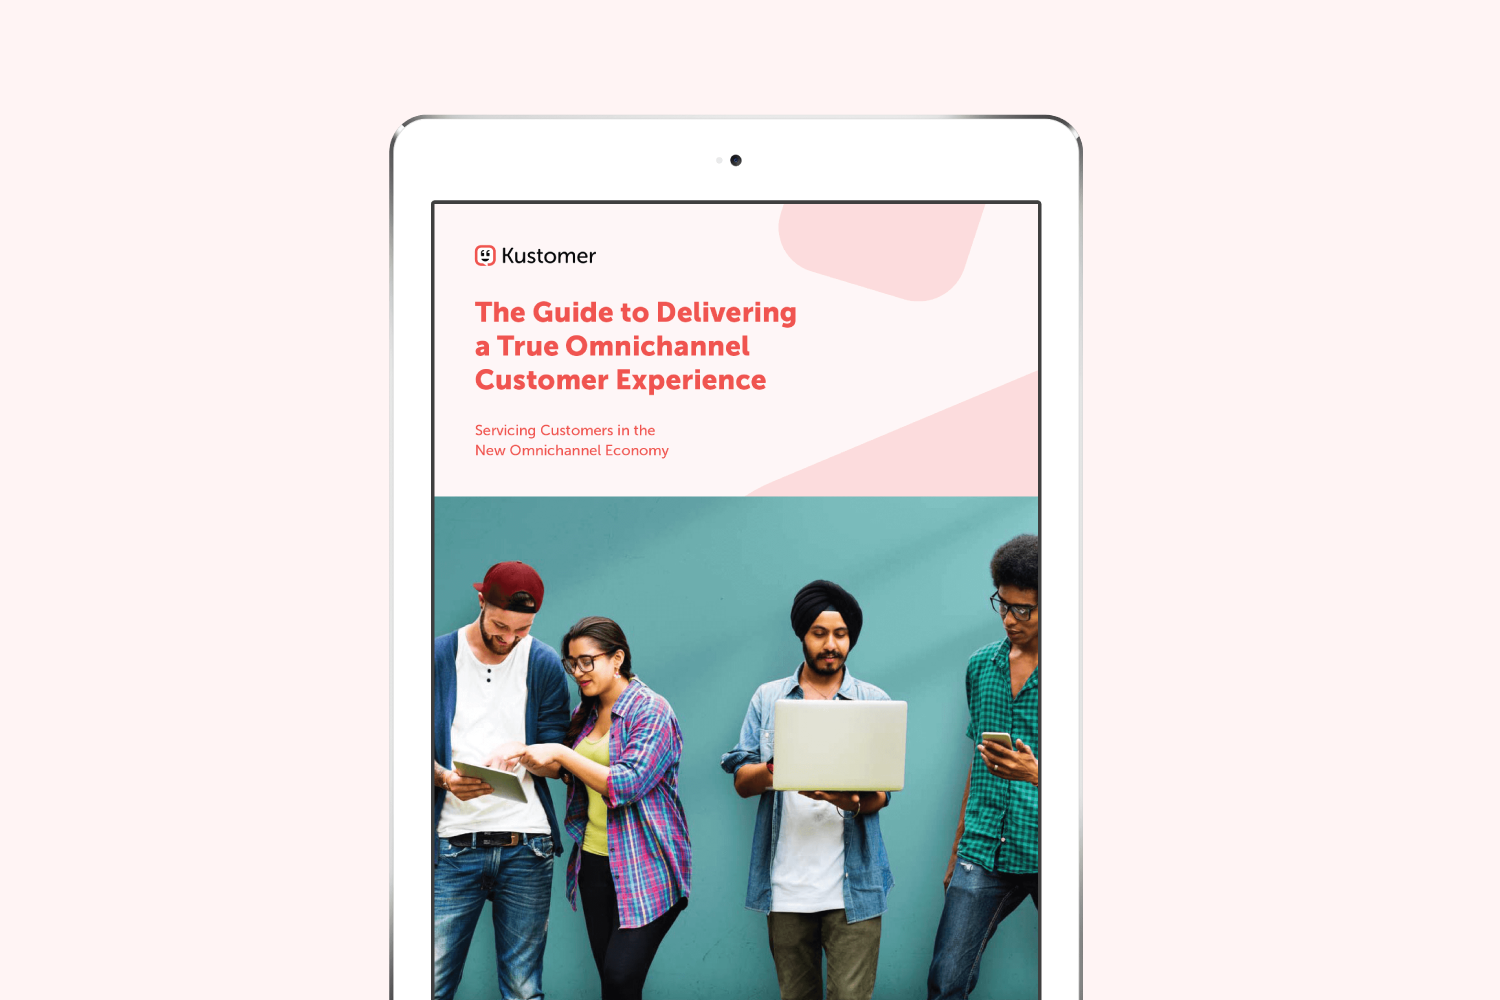 The Guide to Delivering True Omnichannel Support Featured